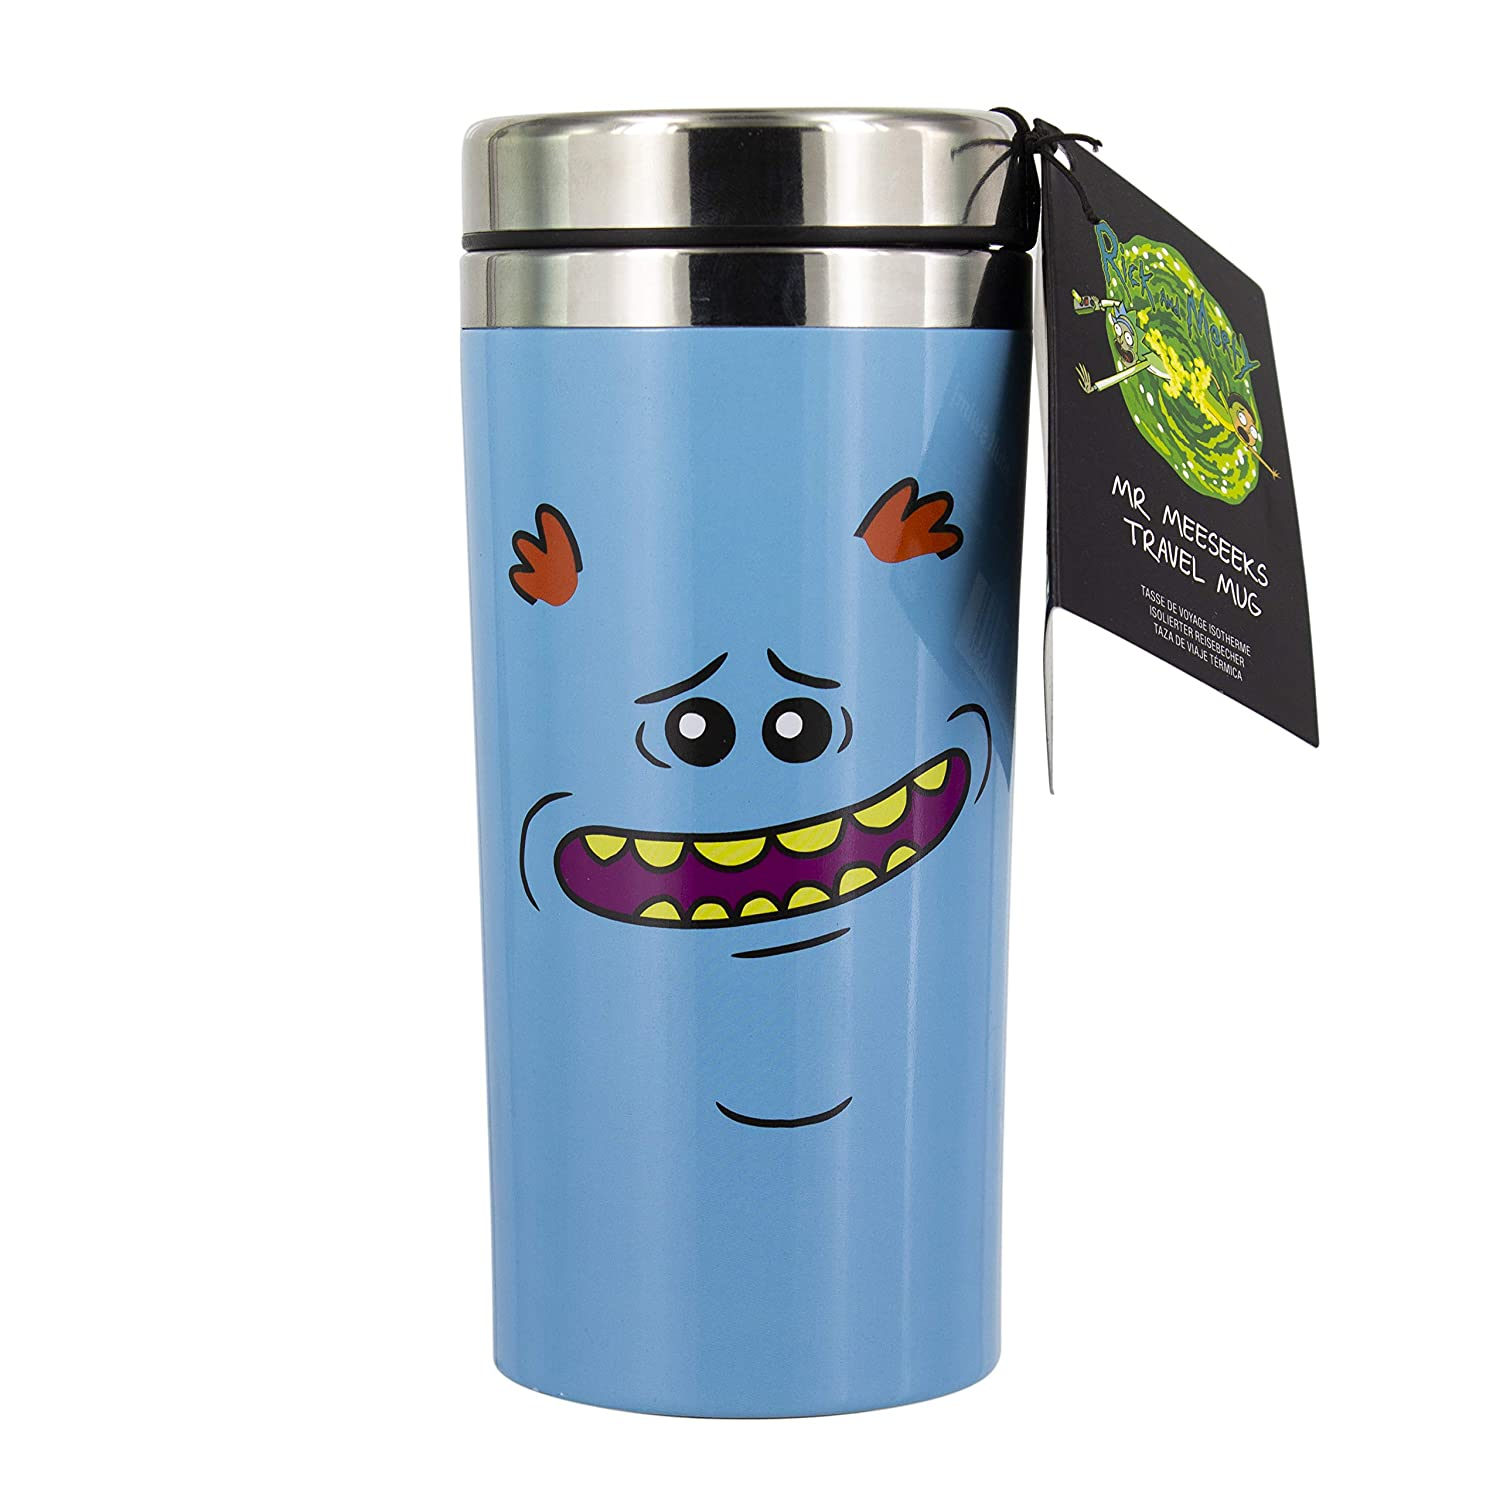 Multi Rick /& Morty PP4840RM Tazza da Viaggio MR Meeseeks aluminio